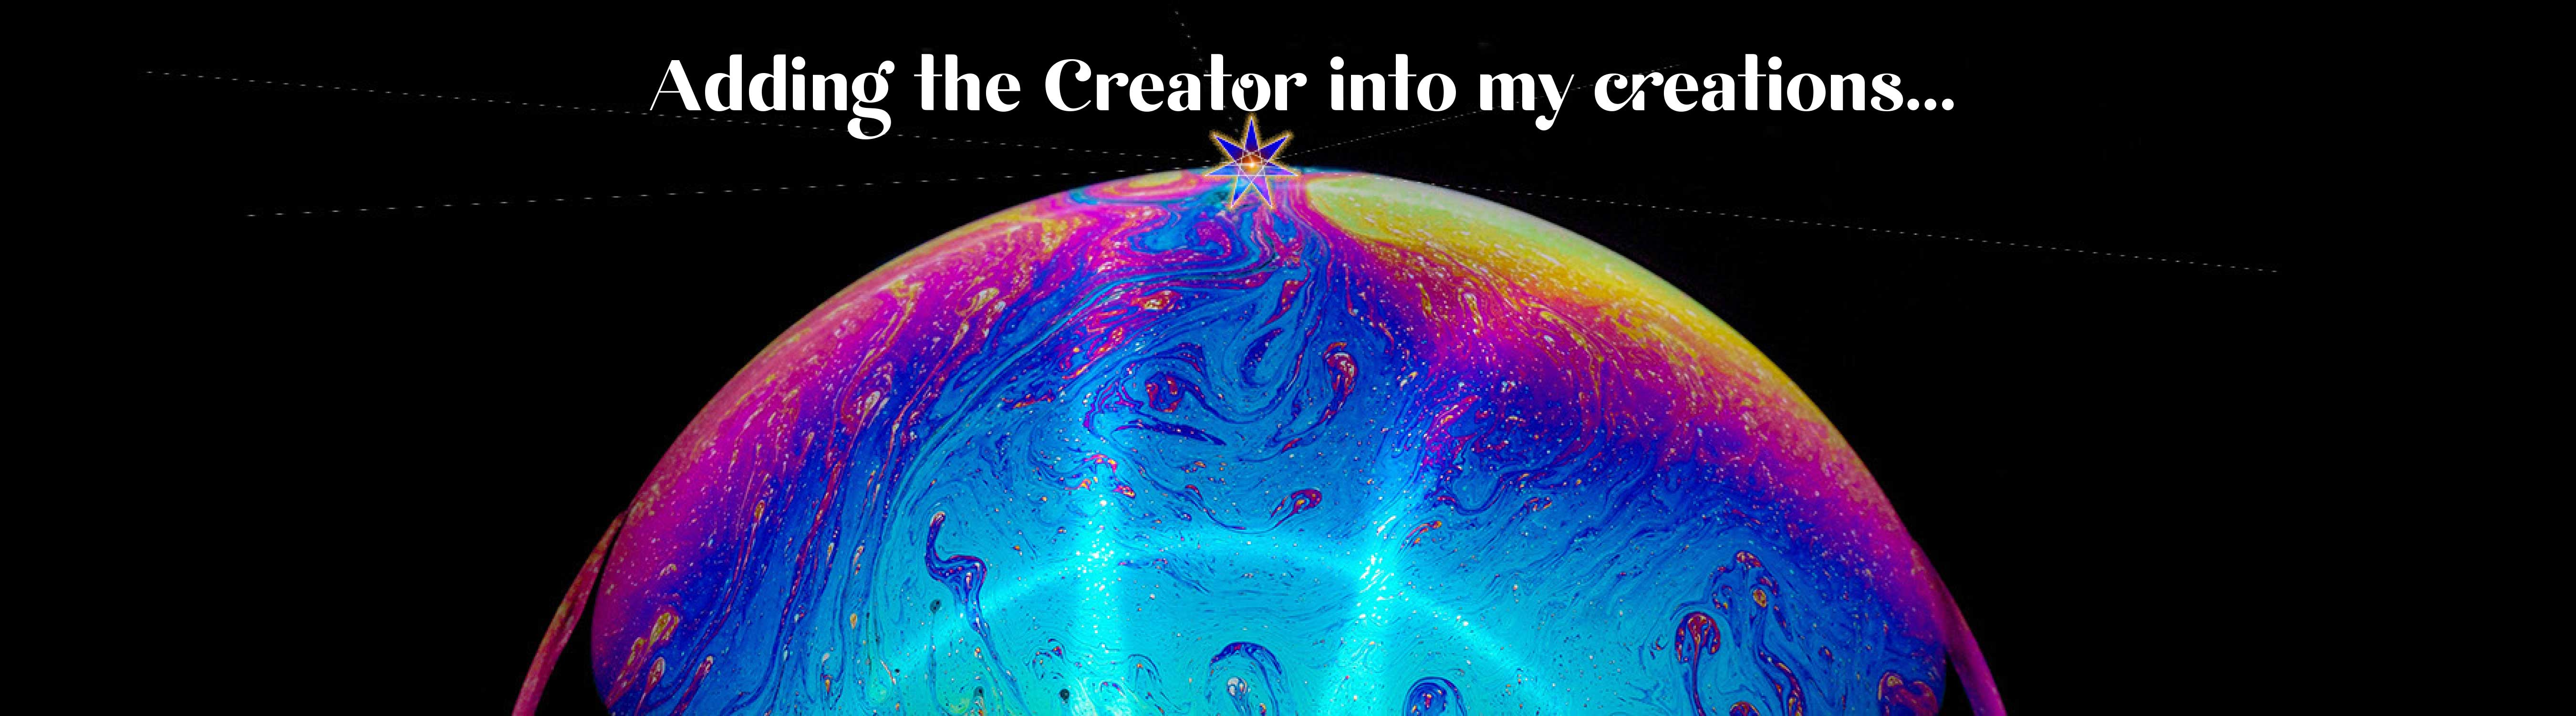 Adding the Creator into your creations…